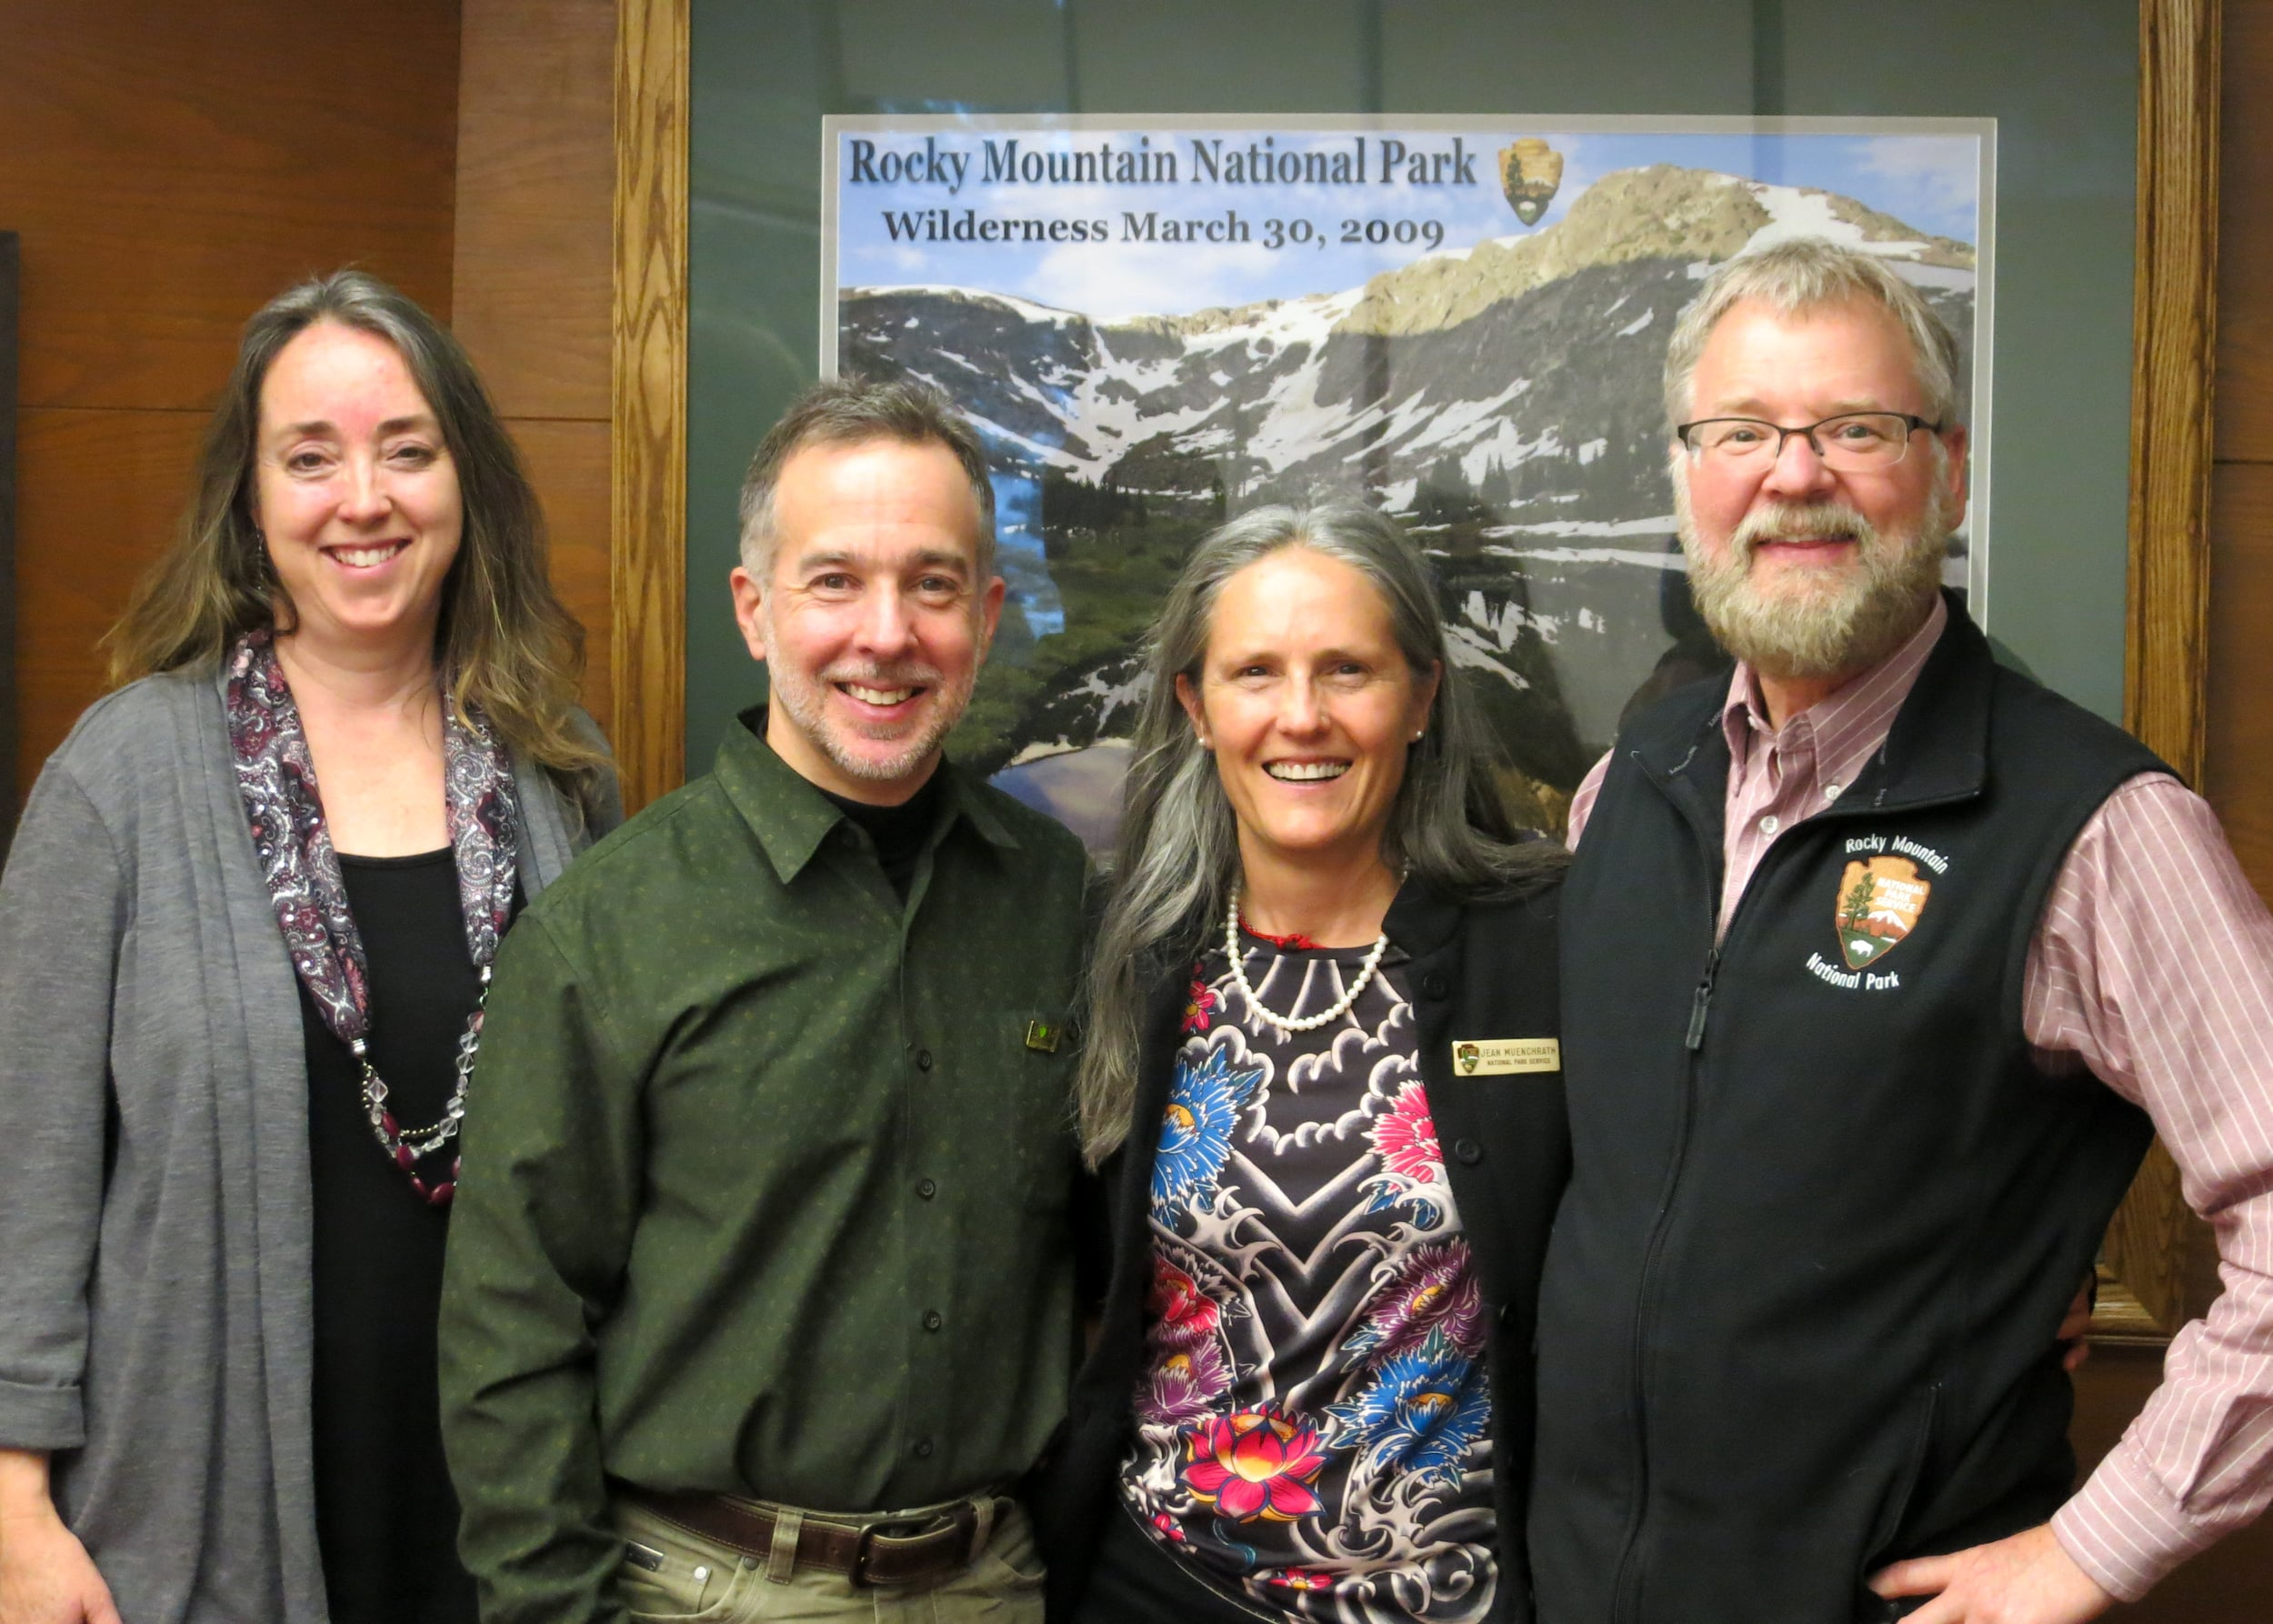 (from L to R) Cynthia Sliker (Boulder Philharmonic), Stephen Lias (composer), Jean Muenchrath (Artist-in-Residence Coordinator), Rich Fedorchak (Chief of Interpretation, Rocky Mountain National Park)